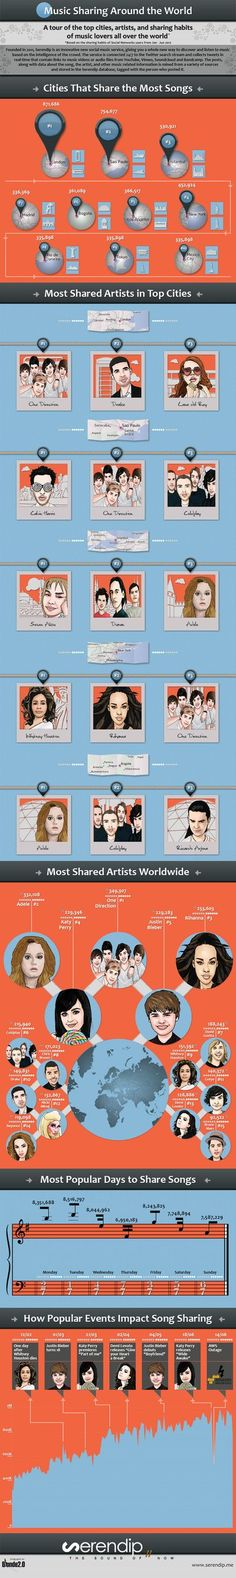 Music-sharing-972 who are the most shared artists on twitter - hypebot